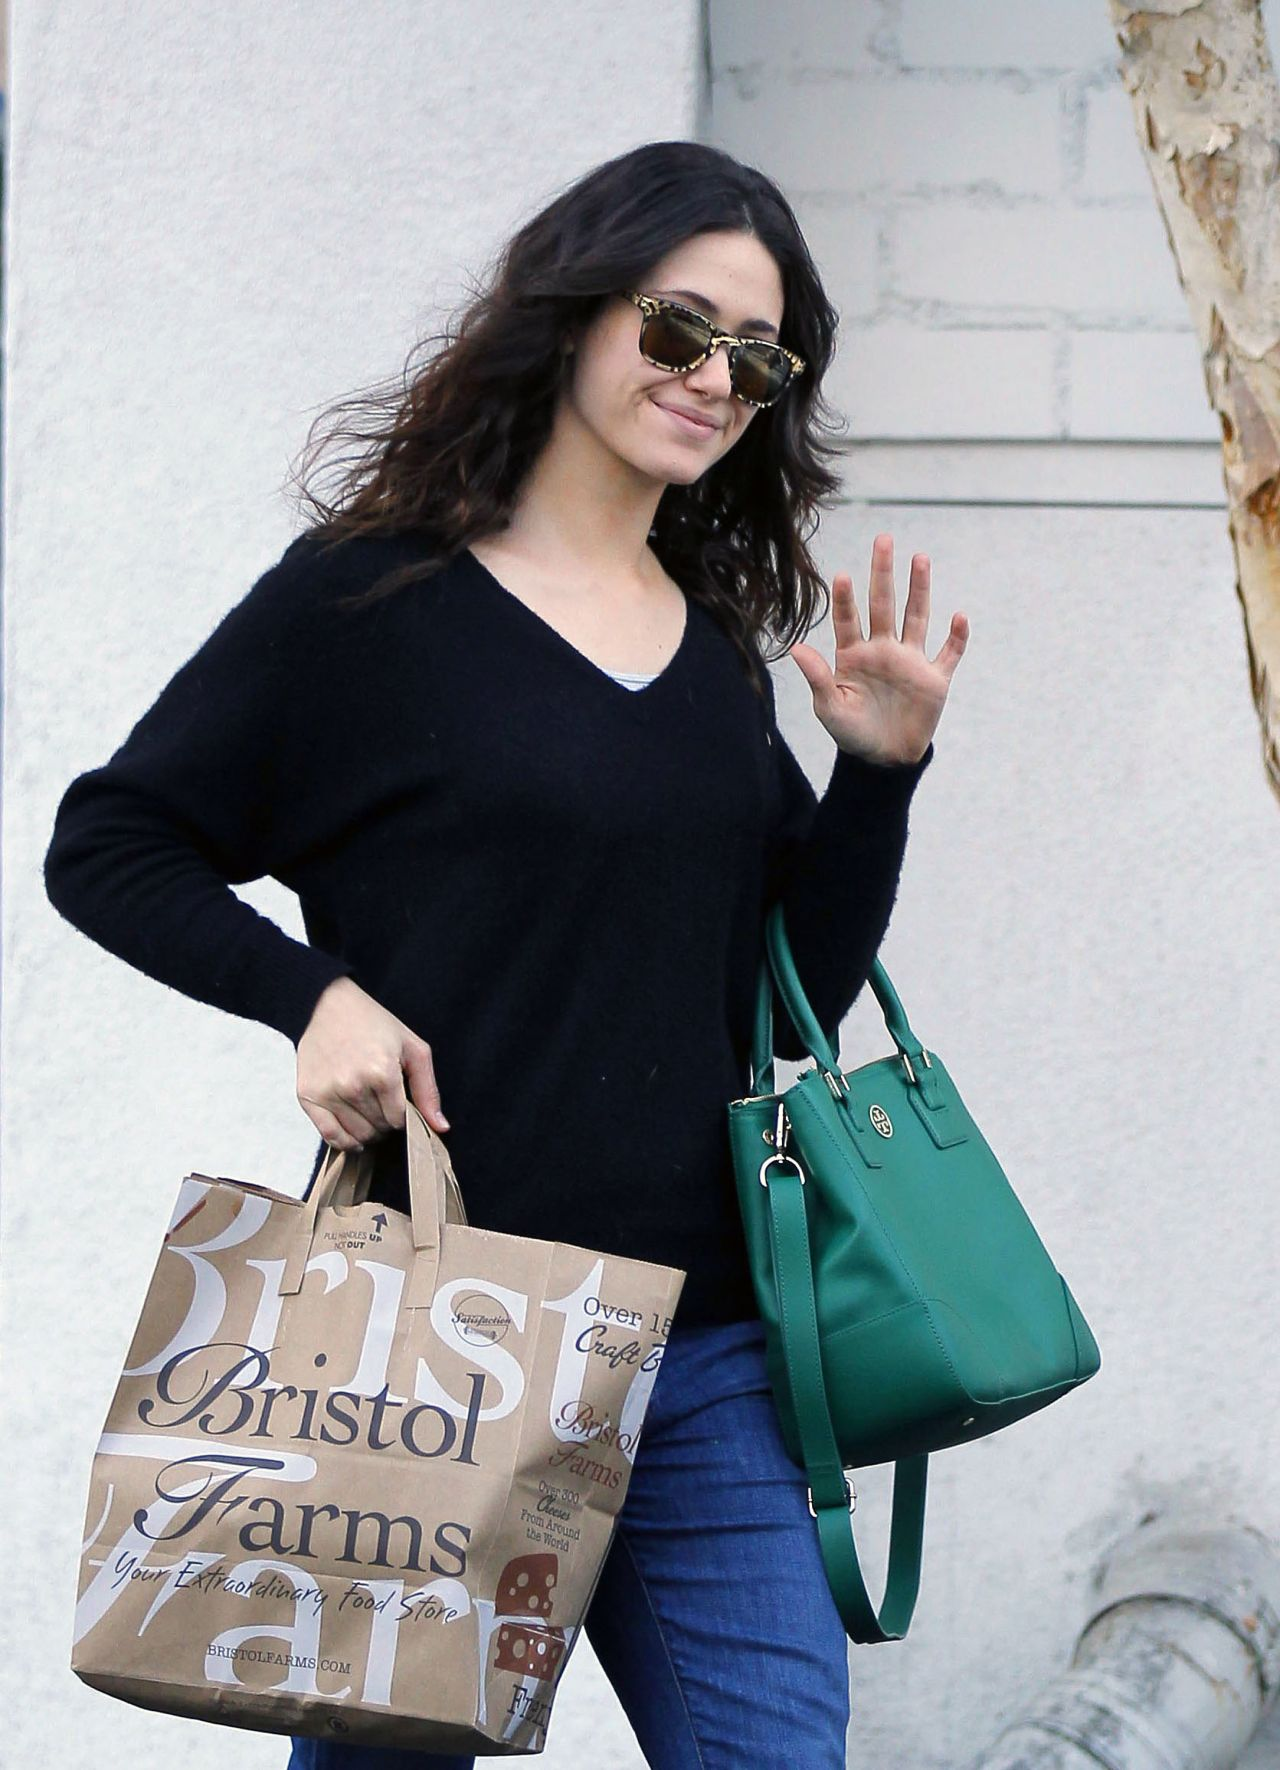 Emmy Rossum Street Style - at Bristol Farms in Los Angeles - November 2013